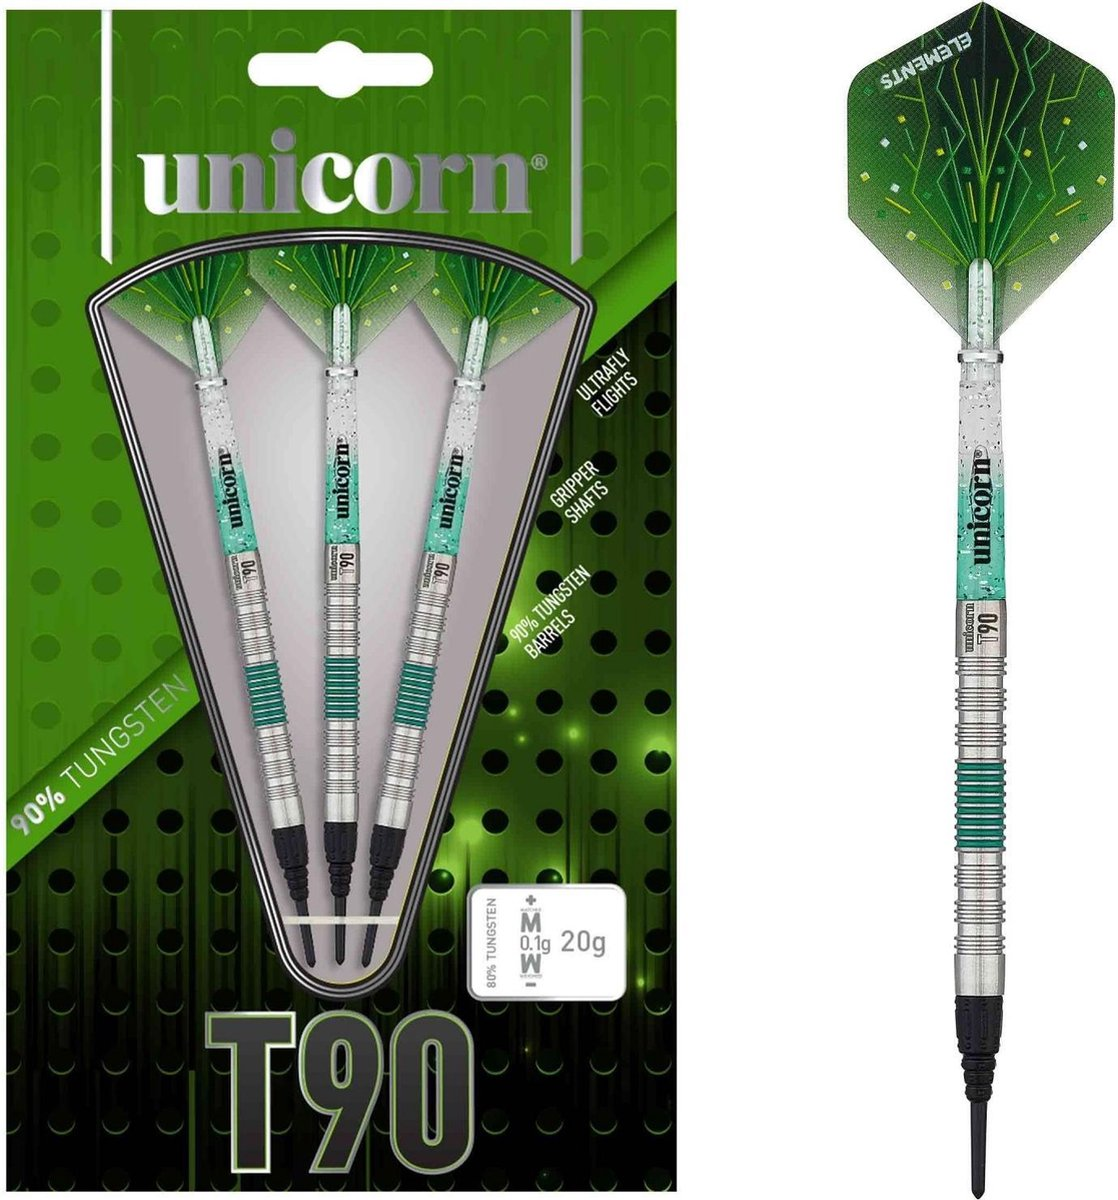 Unicorn Core XL T90 Green 90% Soft Tip - 23 Gram